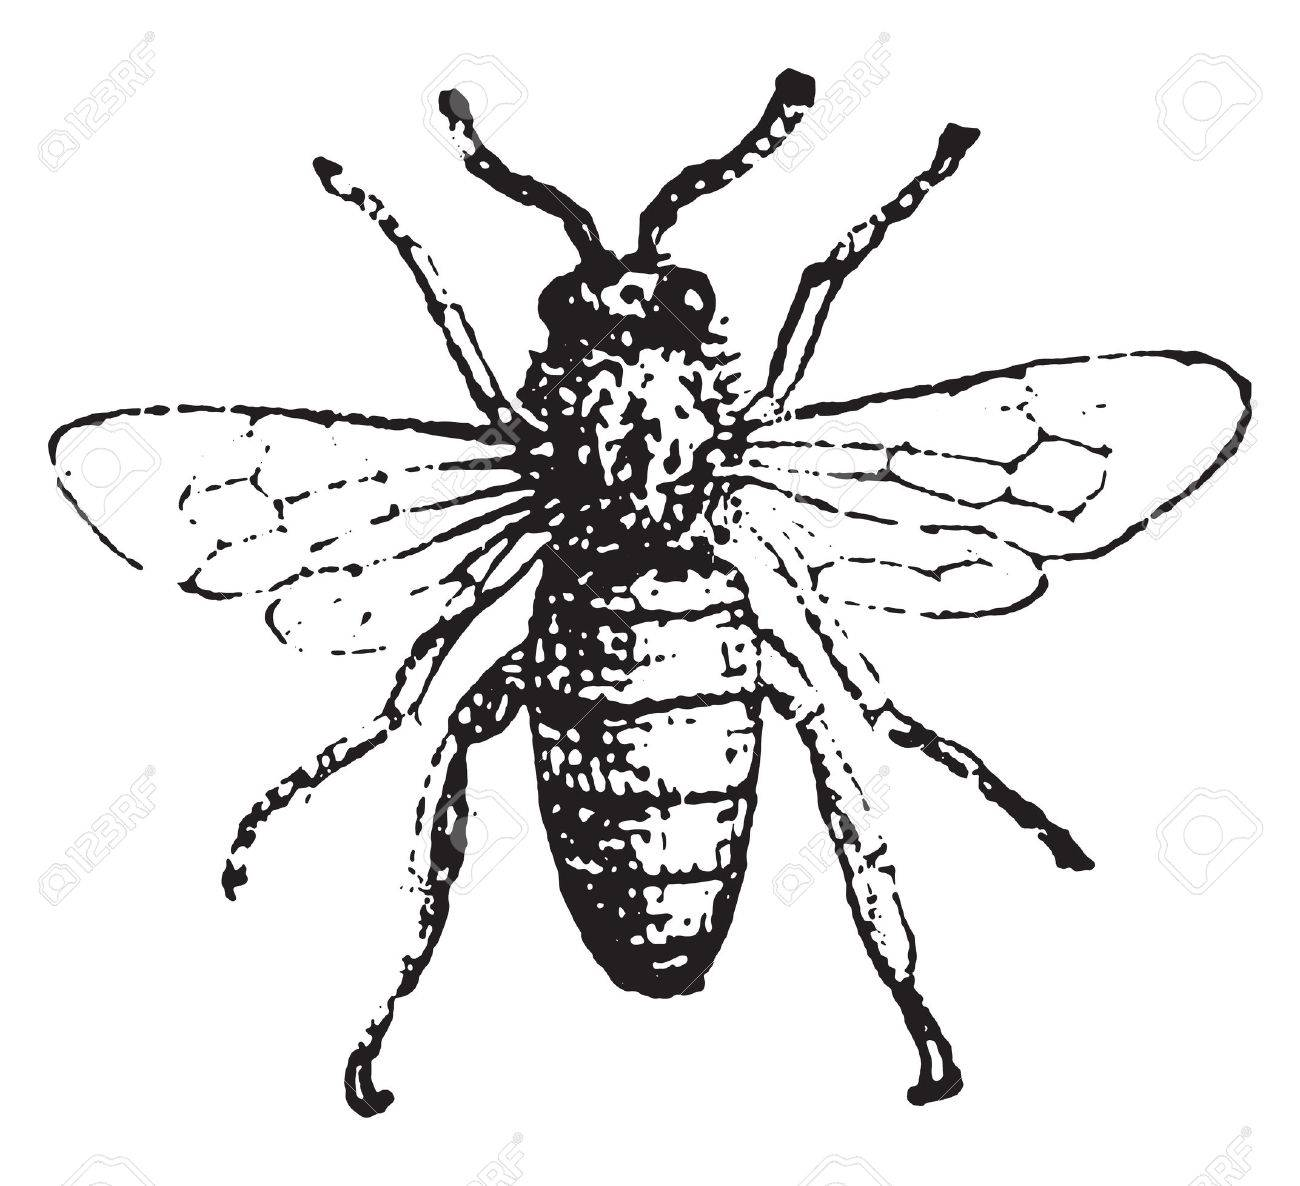 Bee, vintage engraved illustration. Dictionary of words and things - Larive and Fleury - 1895. - 41712949